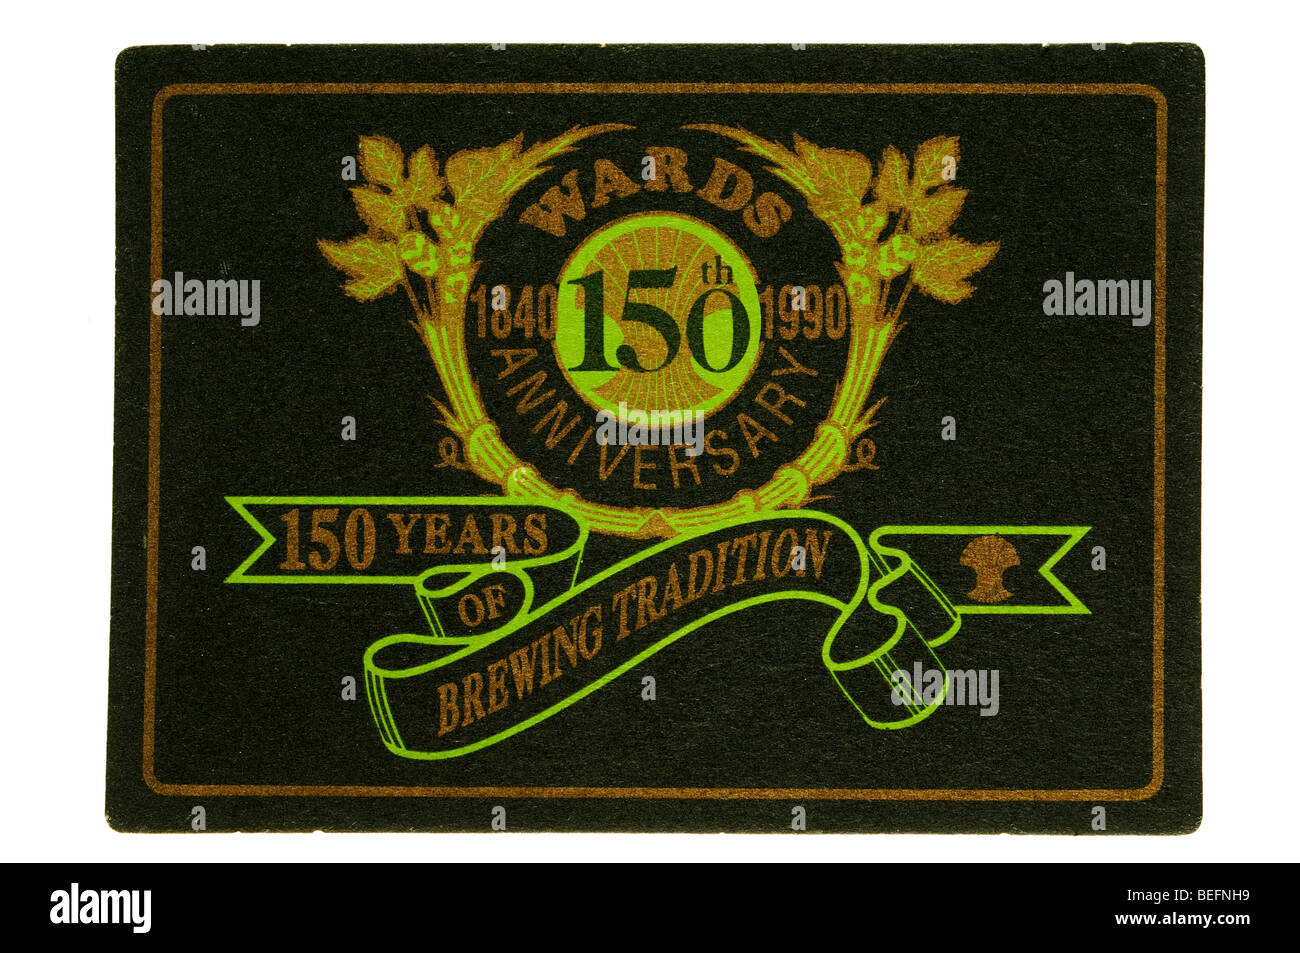 wards 150th anniversary 1840 1990 150 years of brewing tradition - Stock Image